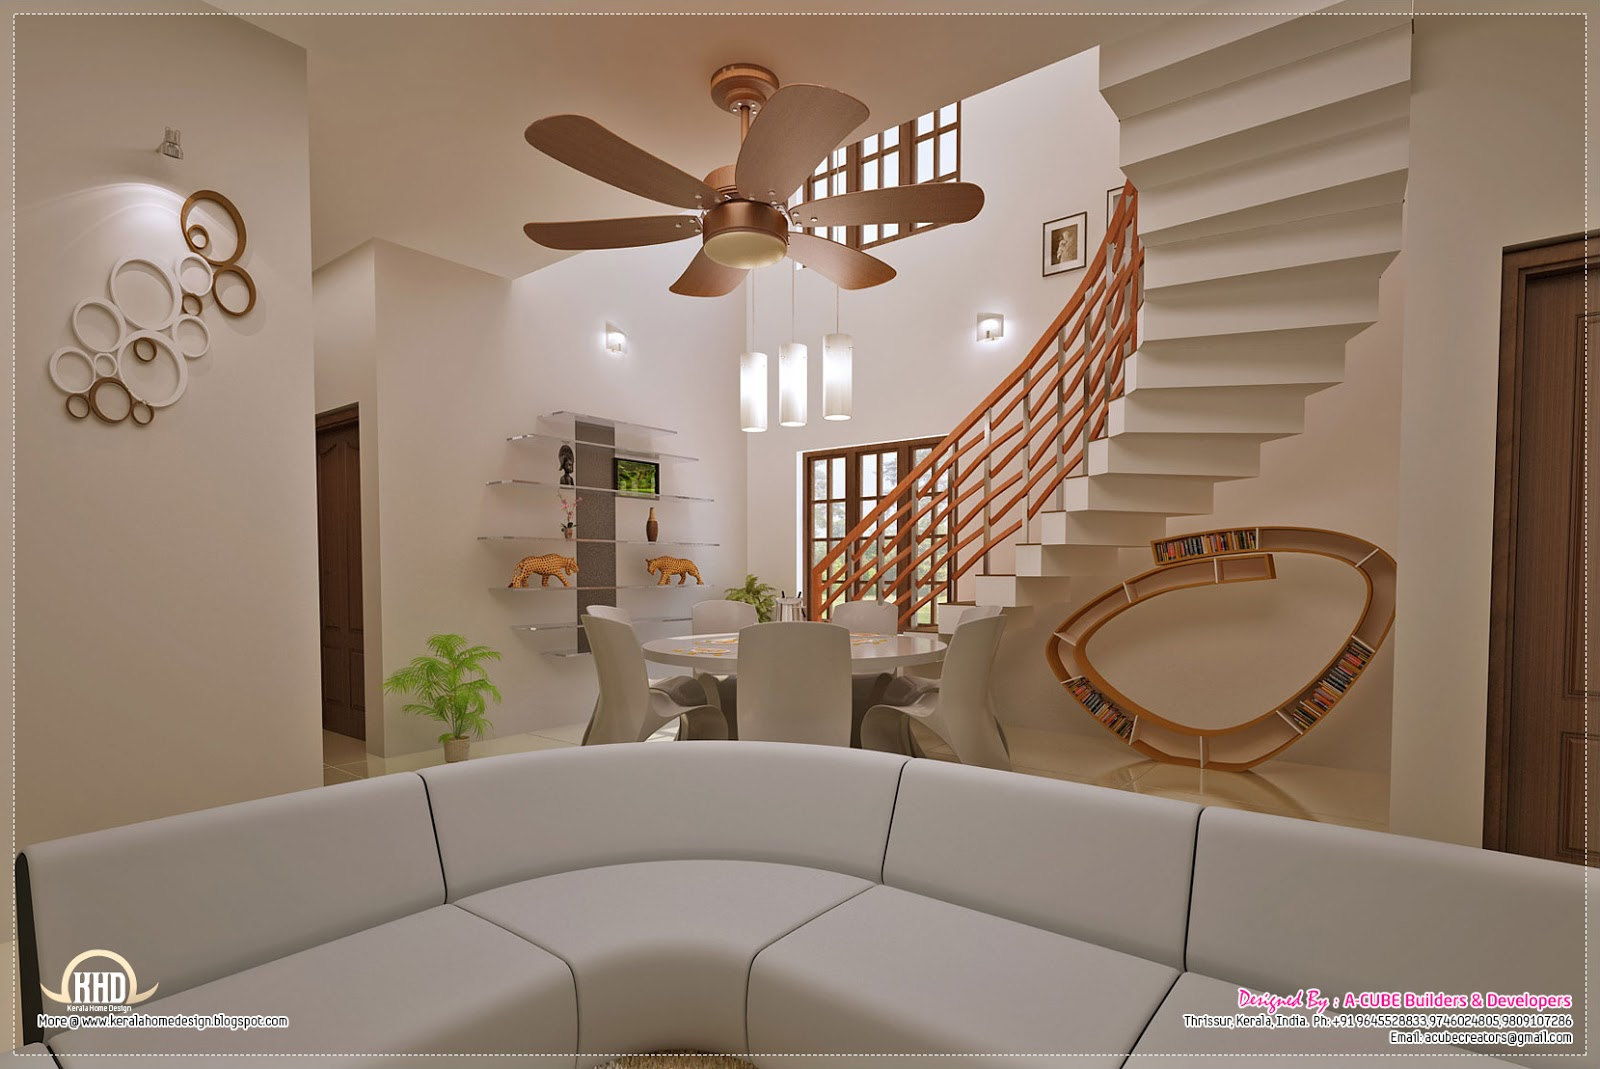 Awesome interior decoration ideas home kerala plans for Interior designs ideas